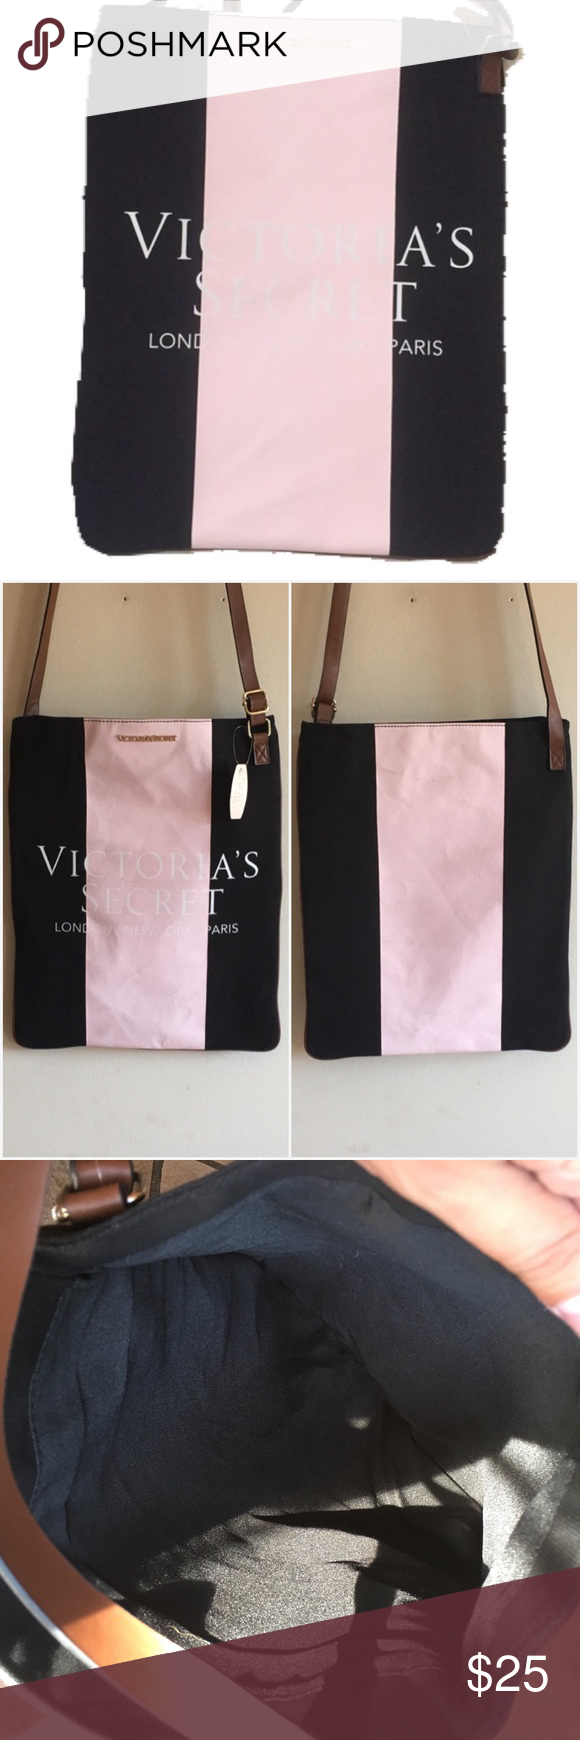 """NWT Victoria's Secret Crossbody Pink center stripe with Victorias Secret signature in white. Black end colorblock. Brown faux leather strap extra long and adjustable. Approximately 14.5"""" tall and 12"""" long. Some soil marks all on pink area of bag. Please see photos. NWT and never worn. No trades. Generous 30% bundle discount. Victoria's Secret Bags Crossbody Bags"""